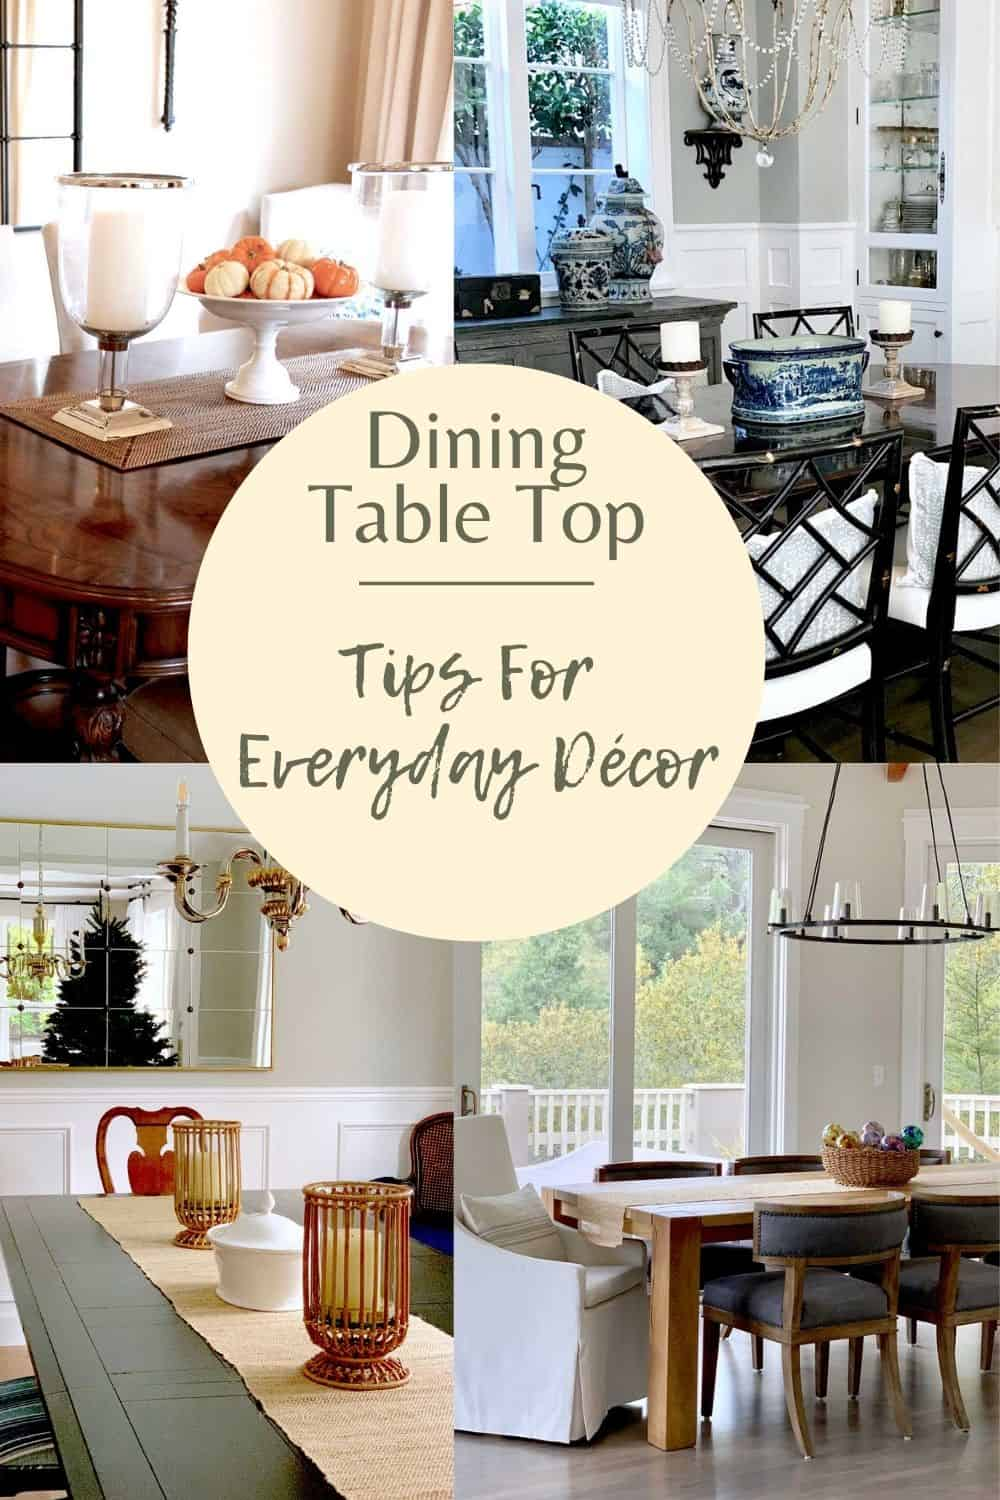 Decorator Mary Ann Pickett's Tips For Dining Table Decor